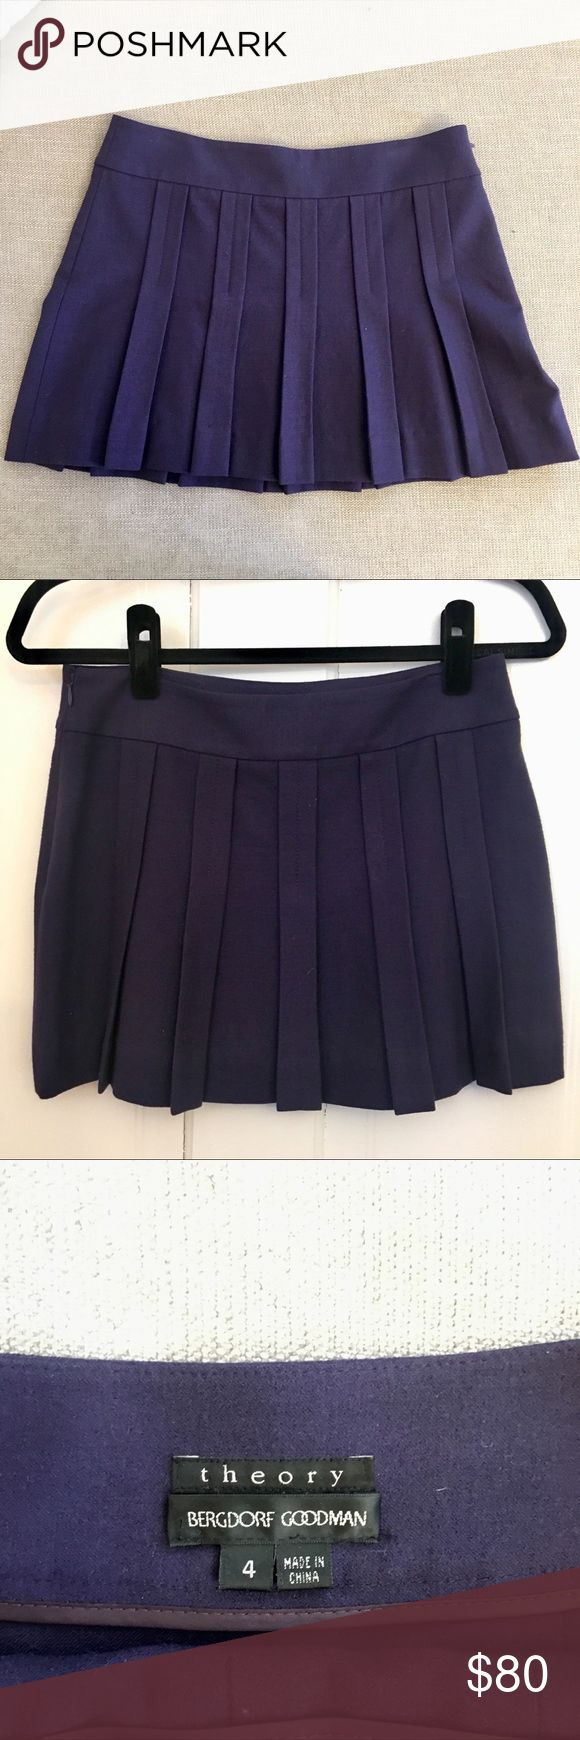 Theory Wool Pleated Skirt Theory wool pleated skirt in gorgeous deep plum color. Size 4. I cut out the interior material tag but the skirt is 100% wool. Excellent condition. Theory Skirts Mini